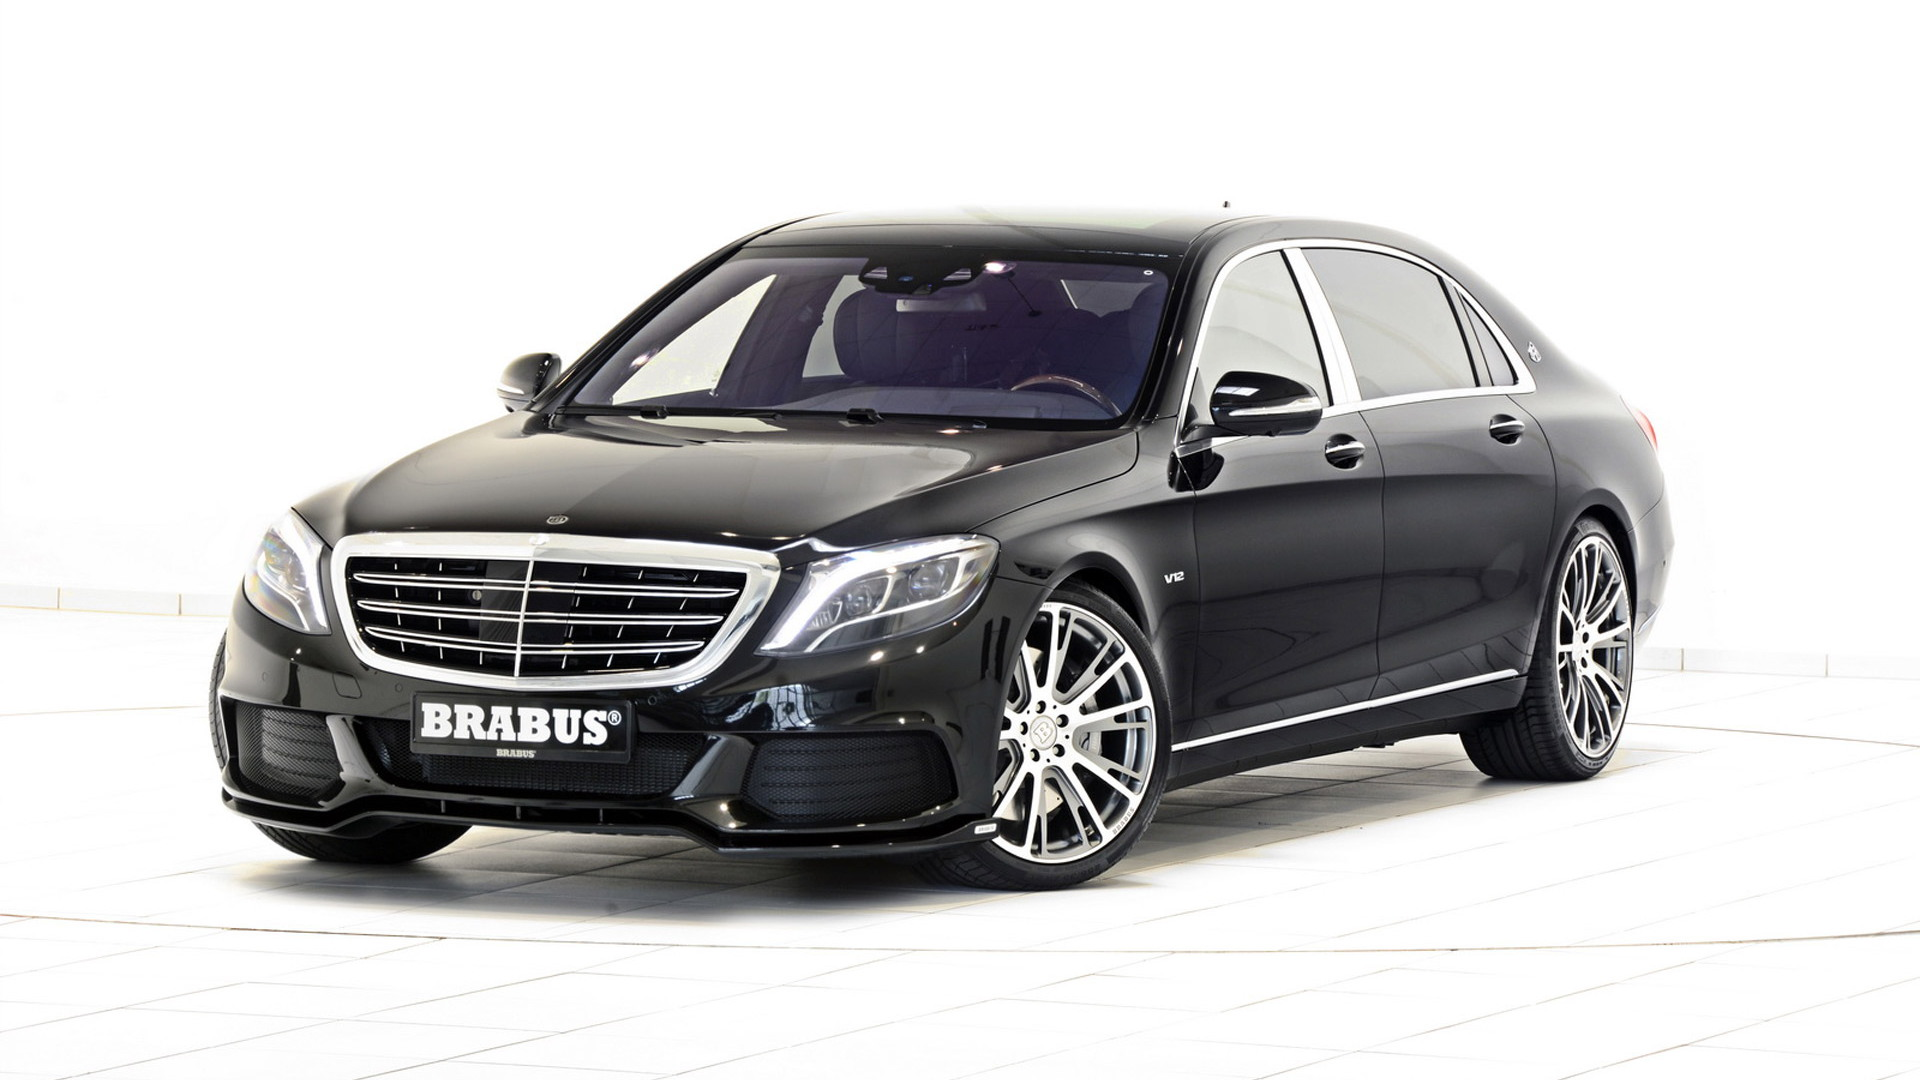 2016 Mercedes-Maybach S600 Brabus Rocket 900